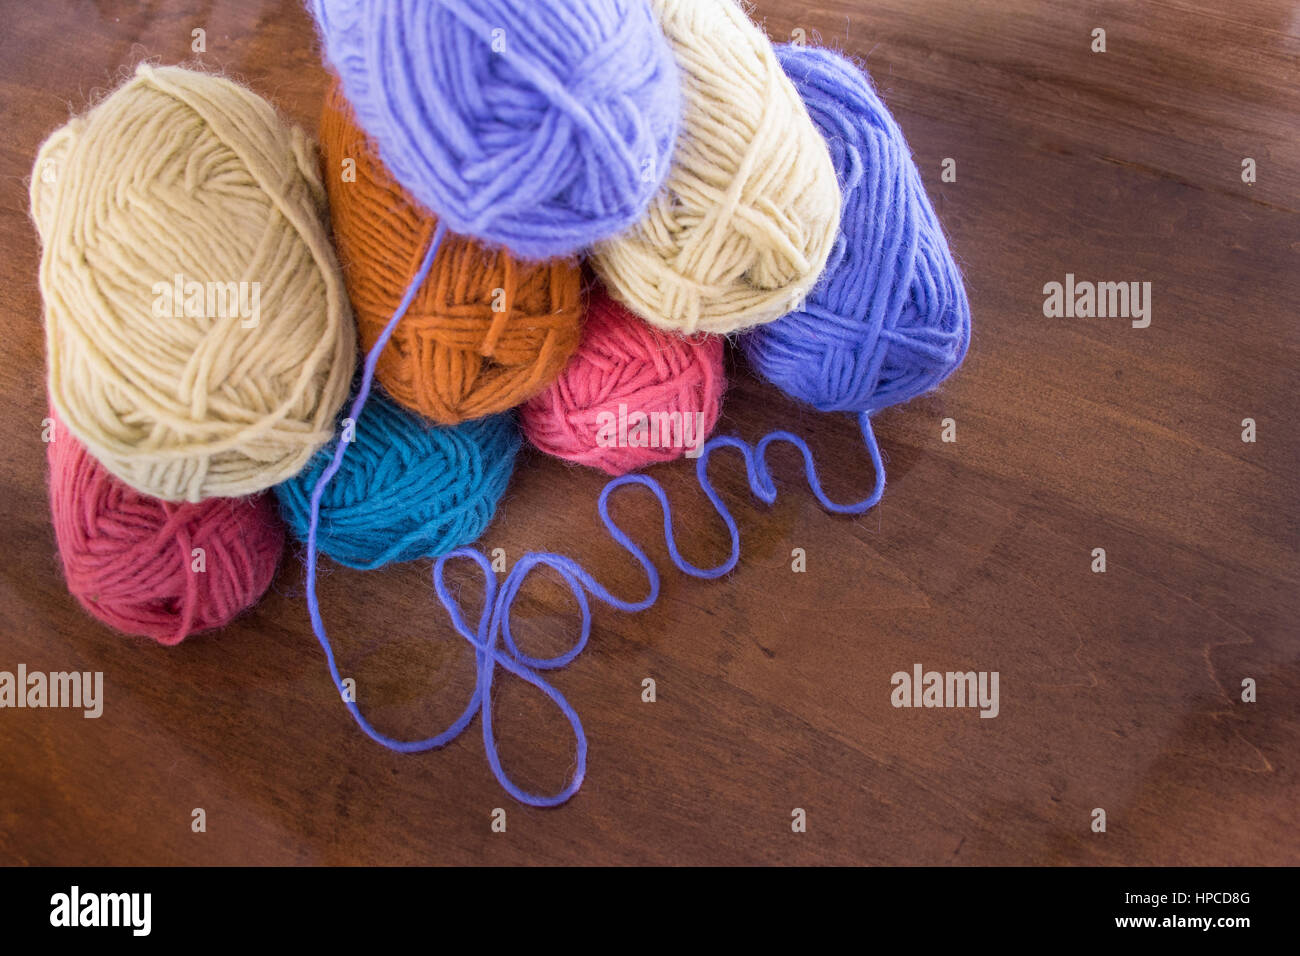 Eight skeins of lavender, cream, gold, turquoise and coral pink wool yarn stacked on a wooden table with the lavender - Stock Image